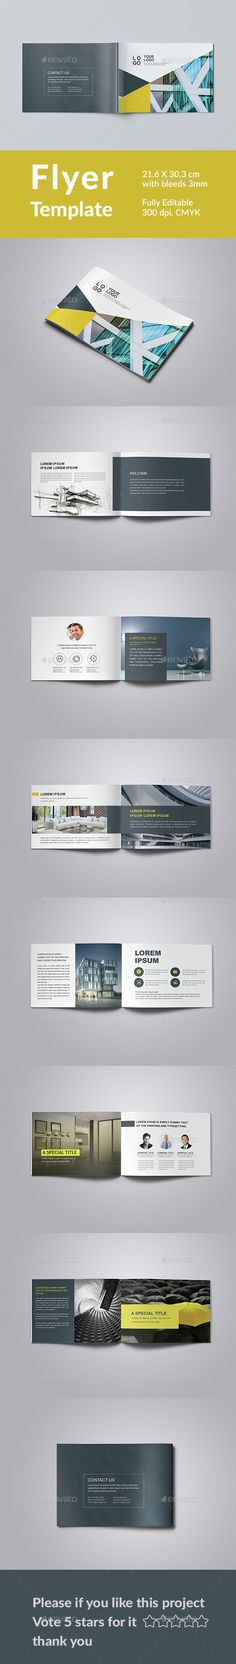 Corporate Brochure Template — Photoshop PSD #a5 #brochure • Available here → https://graphicriver.net/item/corporate-brochure-template/15373885?ref=pxcr